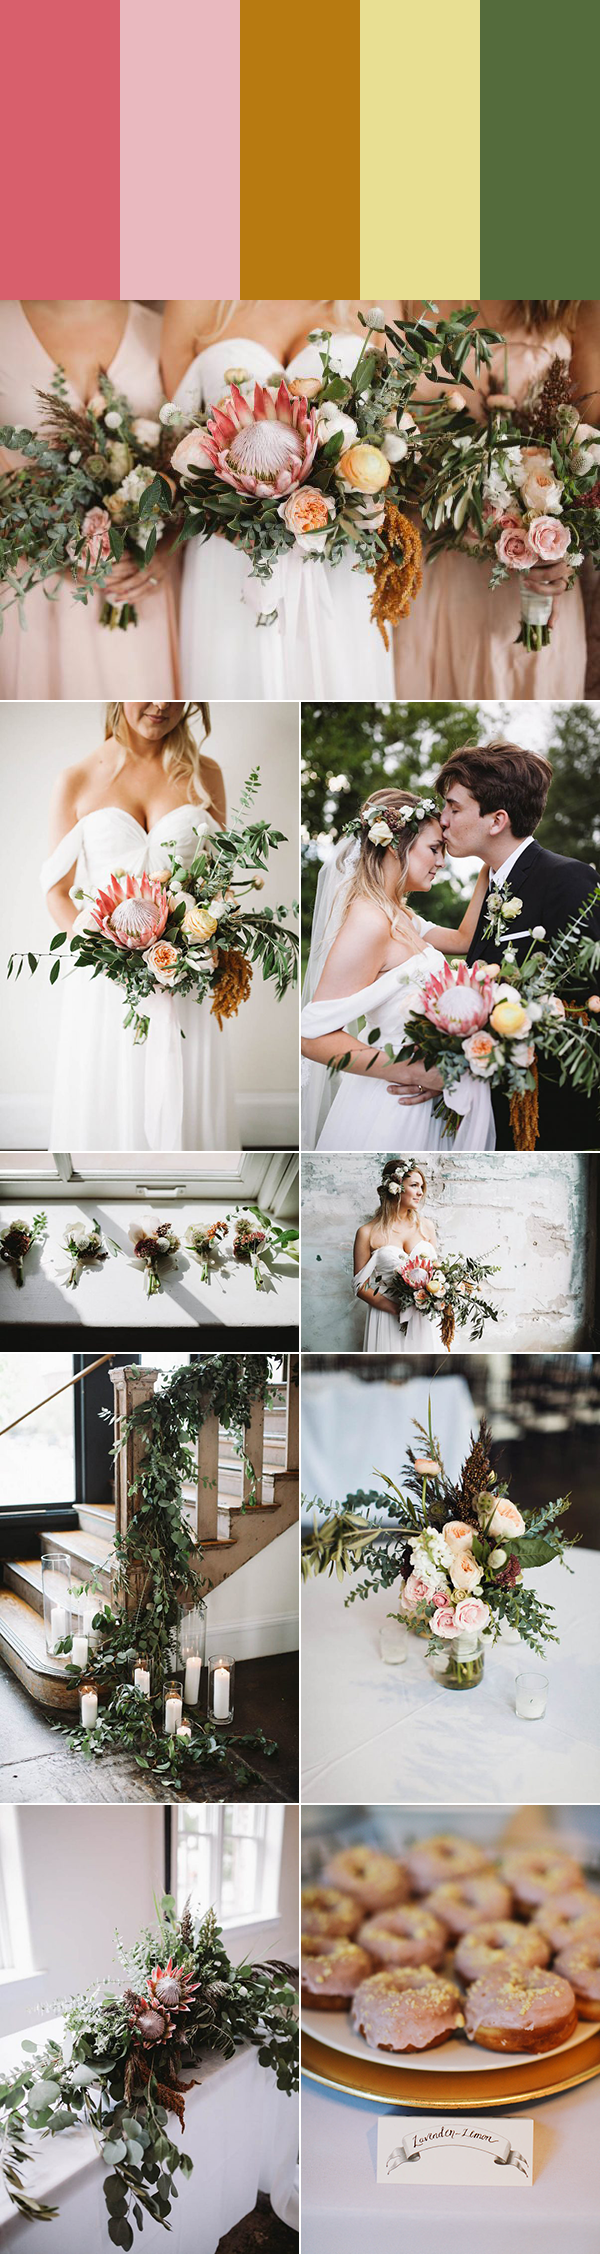 Photos By Sanford Creative Fl Design Mea Flowers Als Donuts Double Trouble See More From This Wedding Here